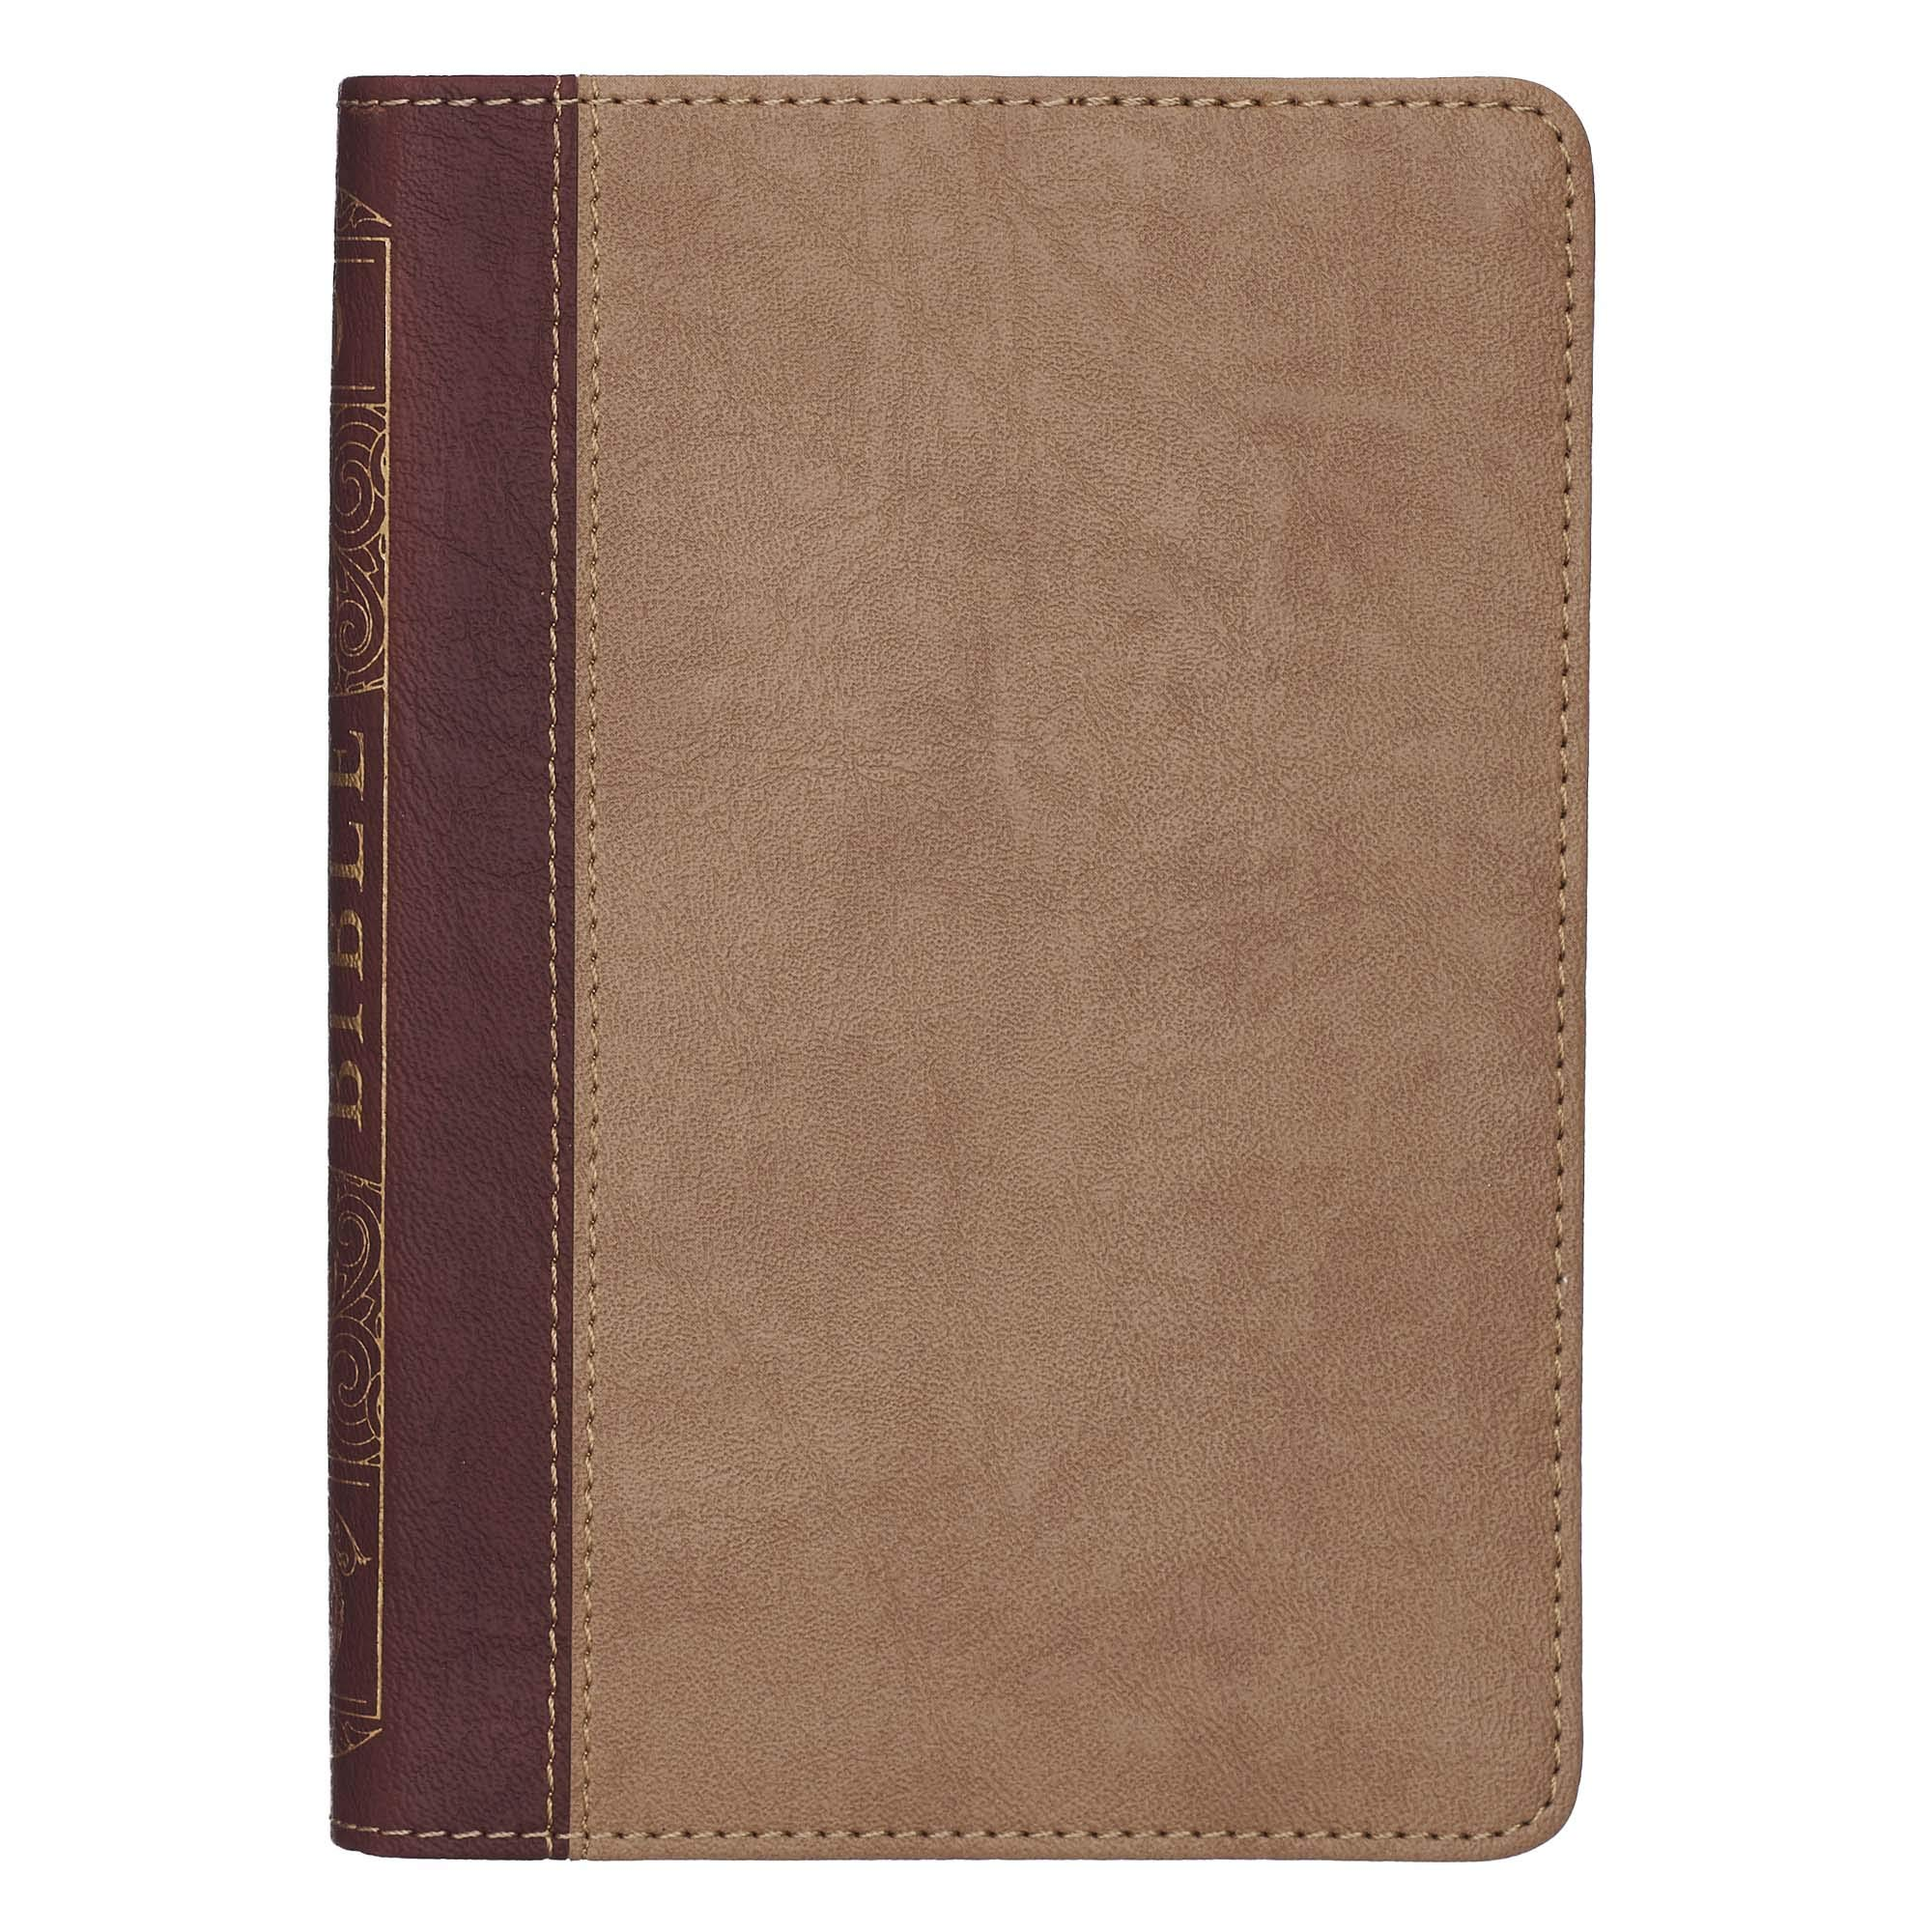 KJV Holy Bible, Compact Bible - Two-Tone Brown Faux Leather Bible w/Ribbon Marker, Red Letter Edition, King James Version